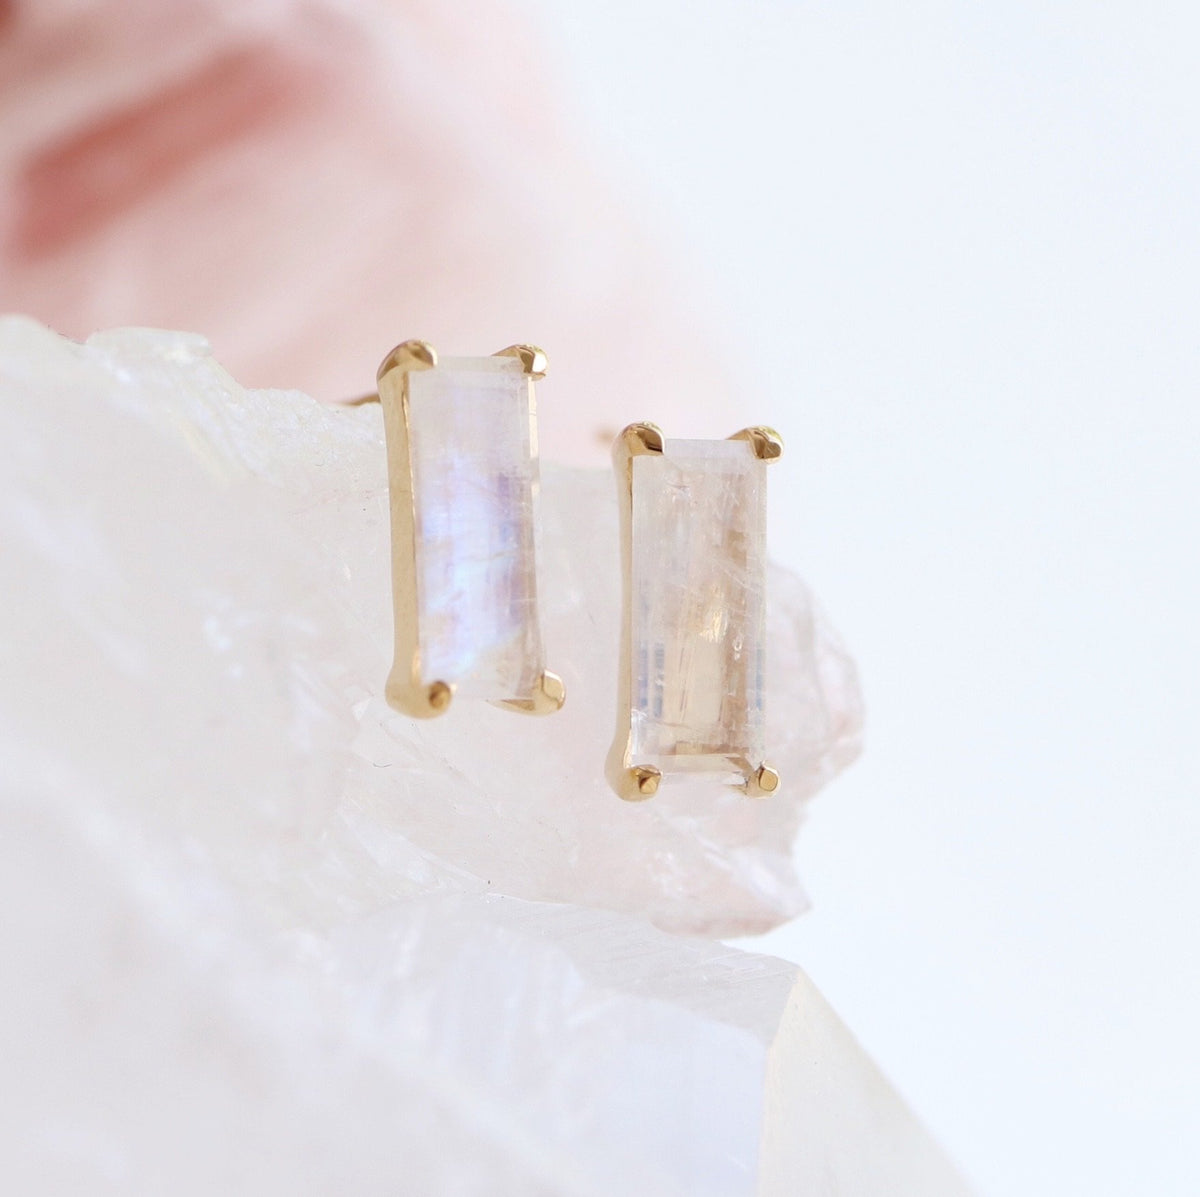 LOYAL STUD EARRINGS - RAINBOW MOONSTONE & GOLD - SO PRETTY CARA COTTER